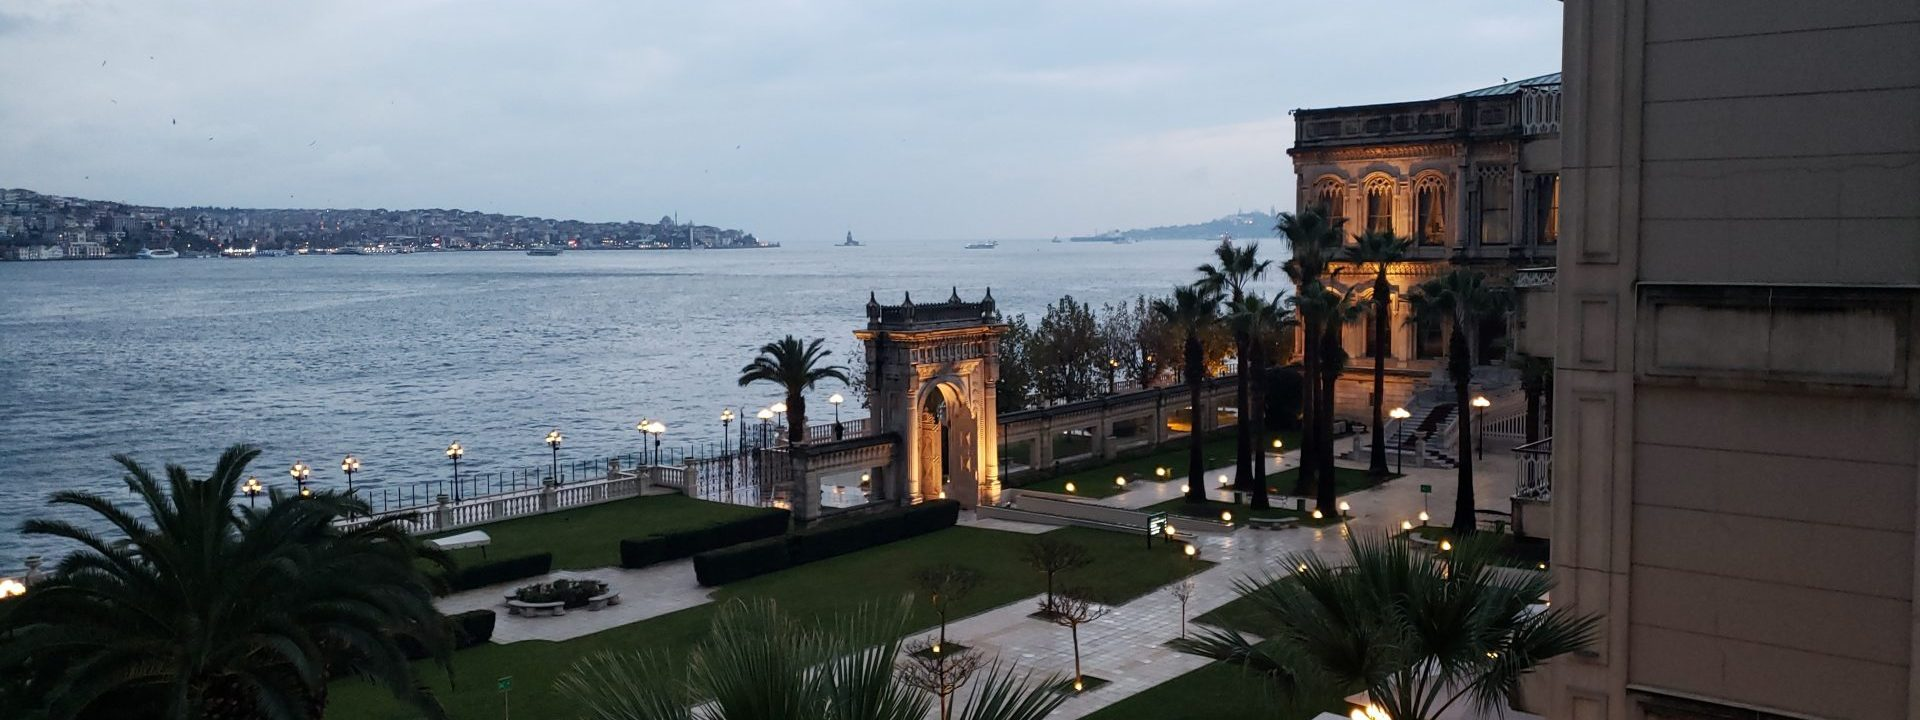 Be treated like royalty at Çırağan Palace Kempinski Istanbul